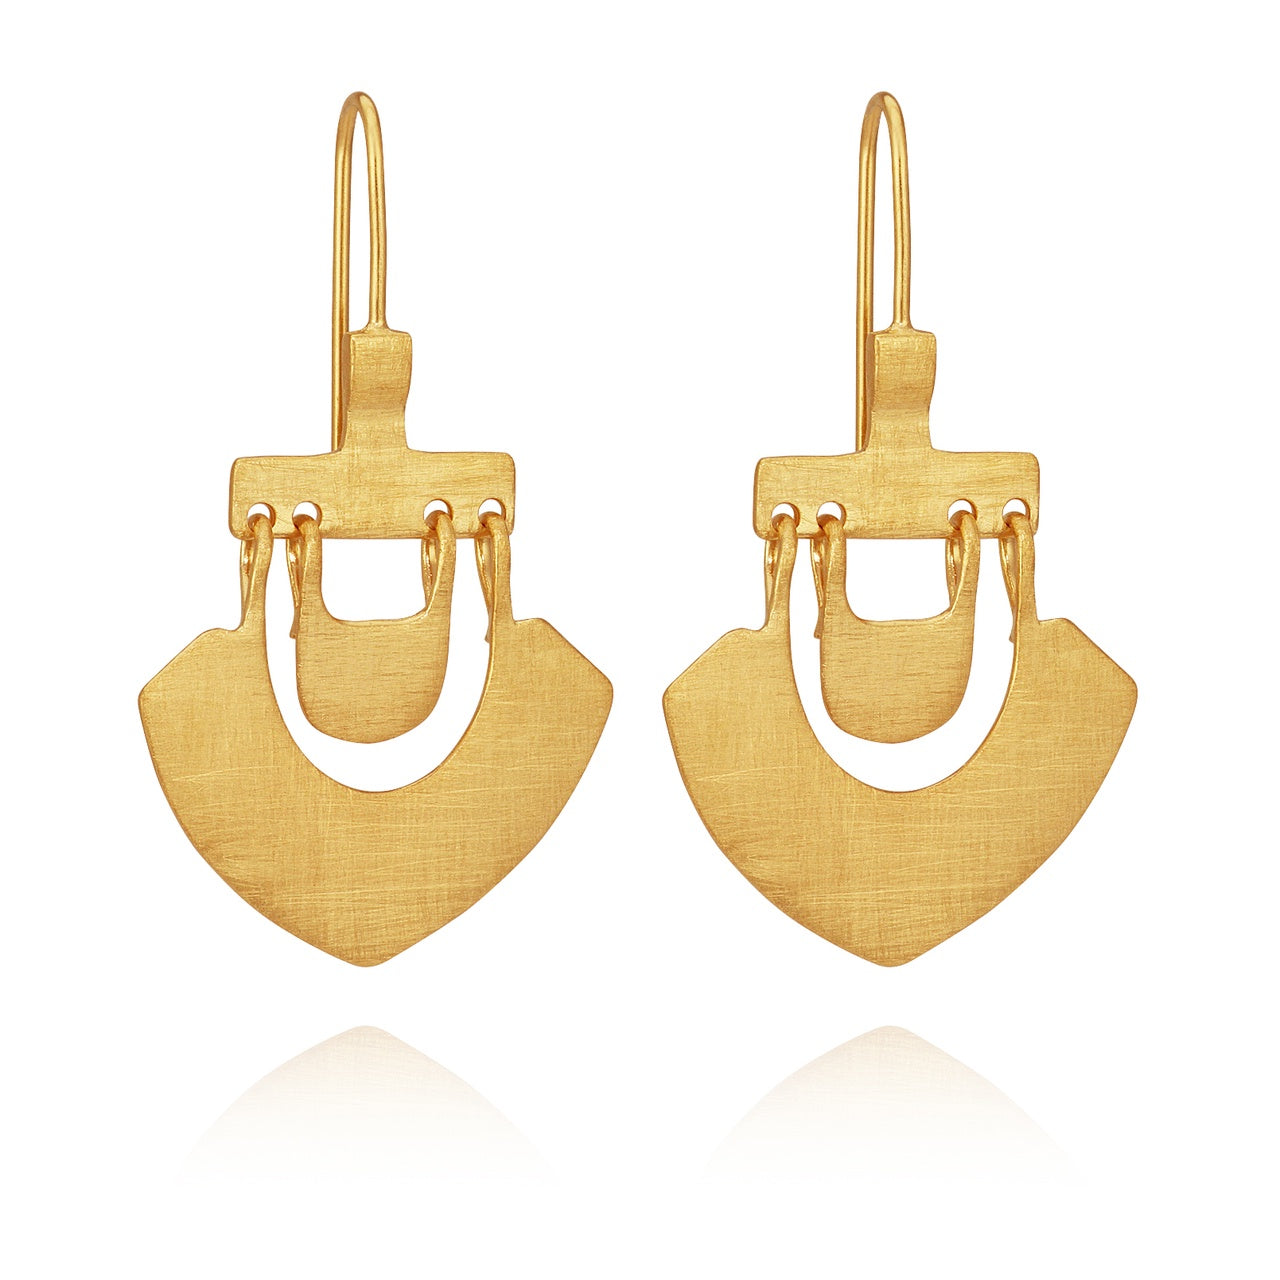 Lilu Earrings Gold - The Artisan Storeroom